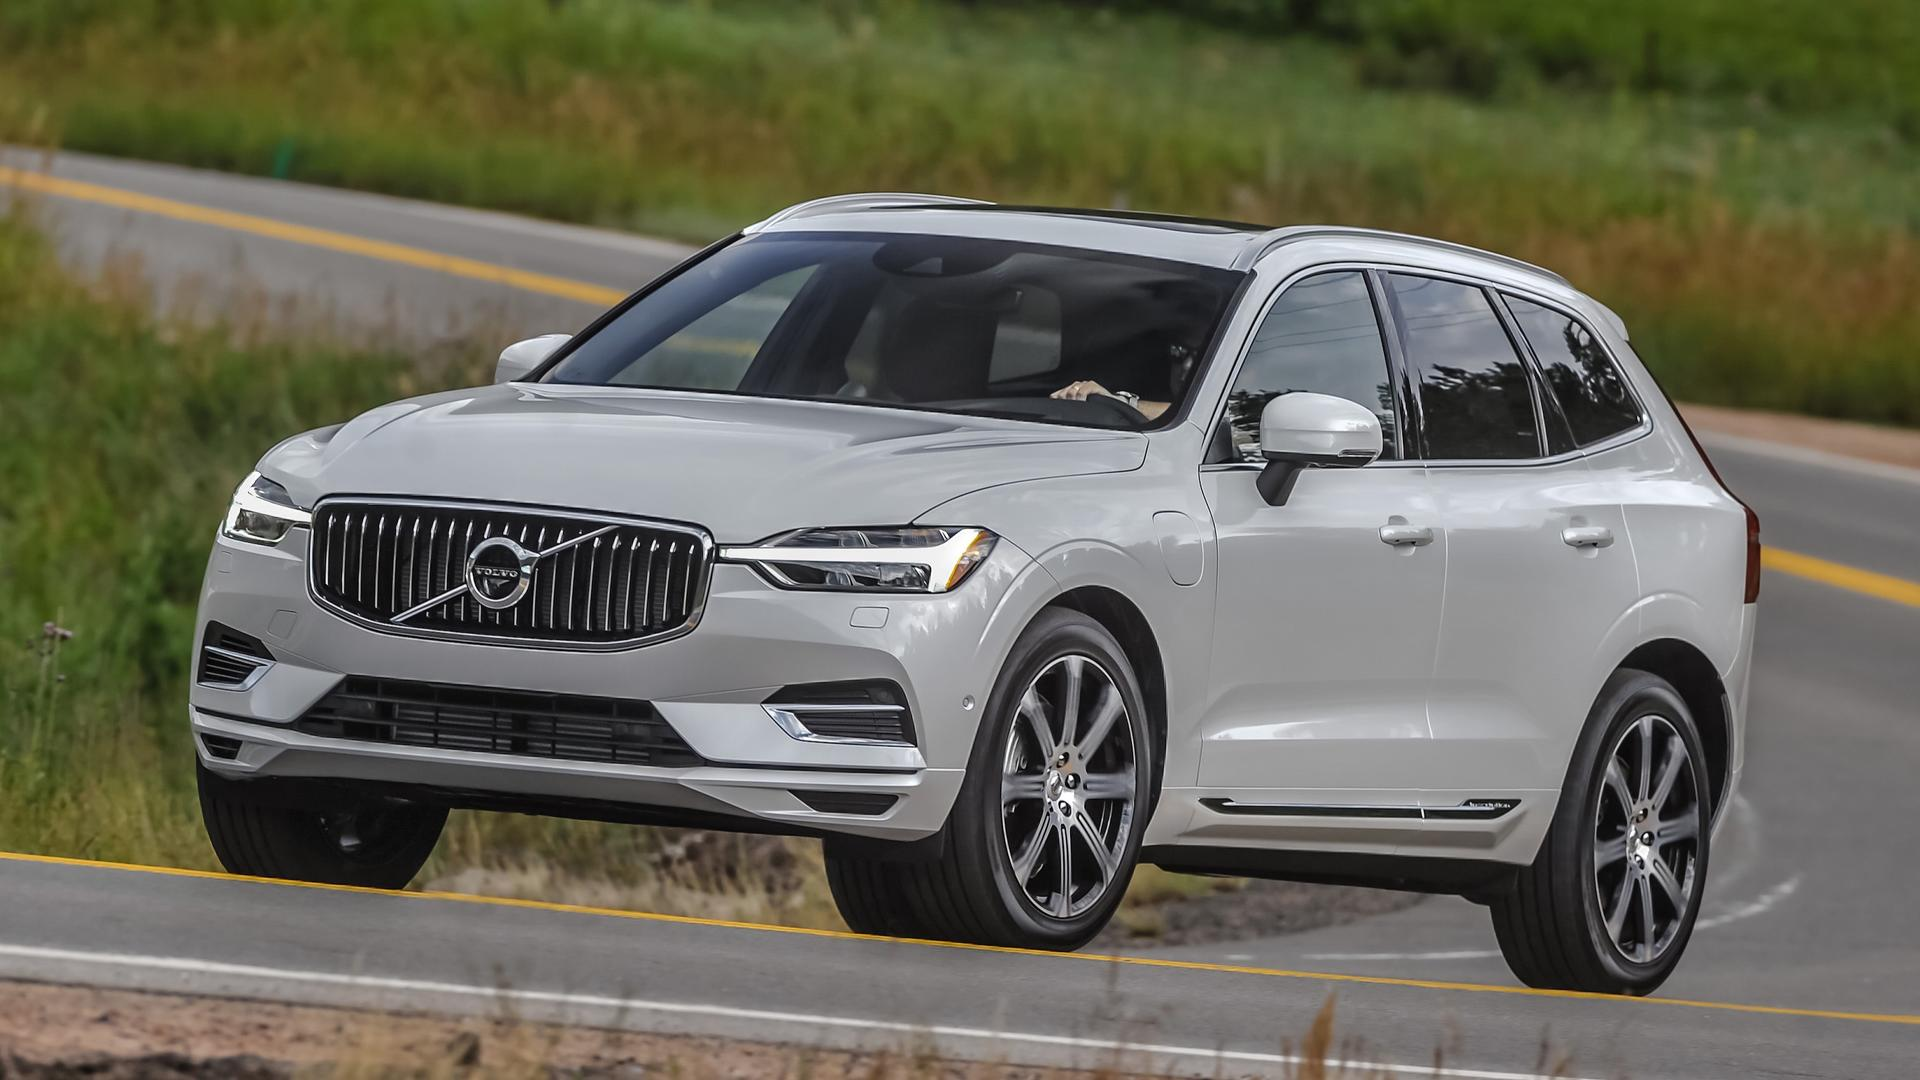 2018 Volvo XC60 USA Version And Release Date >> 2018 Volvo Xc60 T8 Review Performance And Green In One